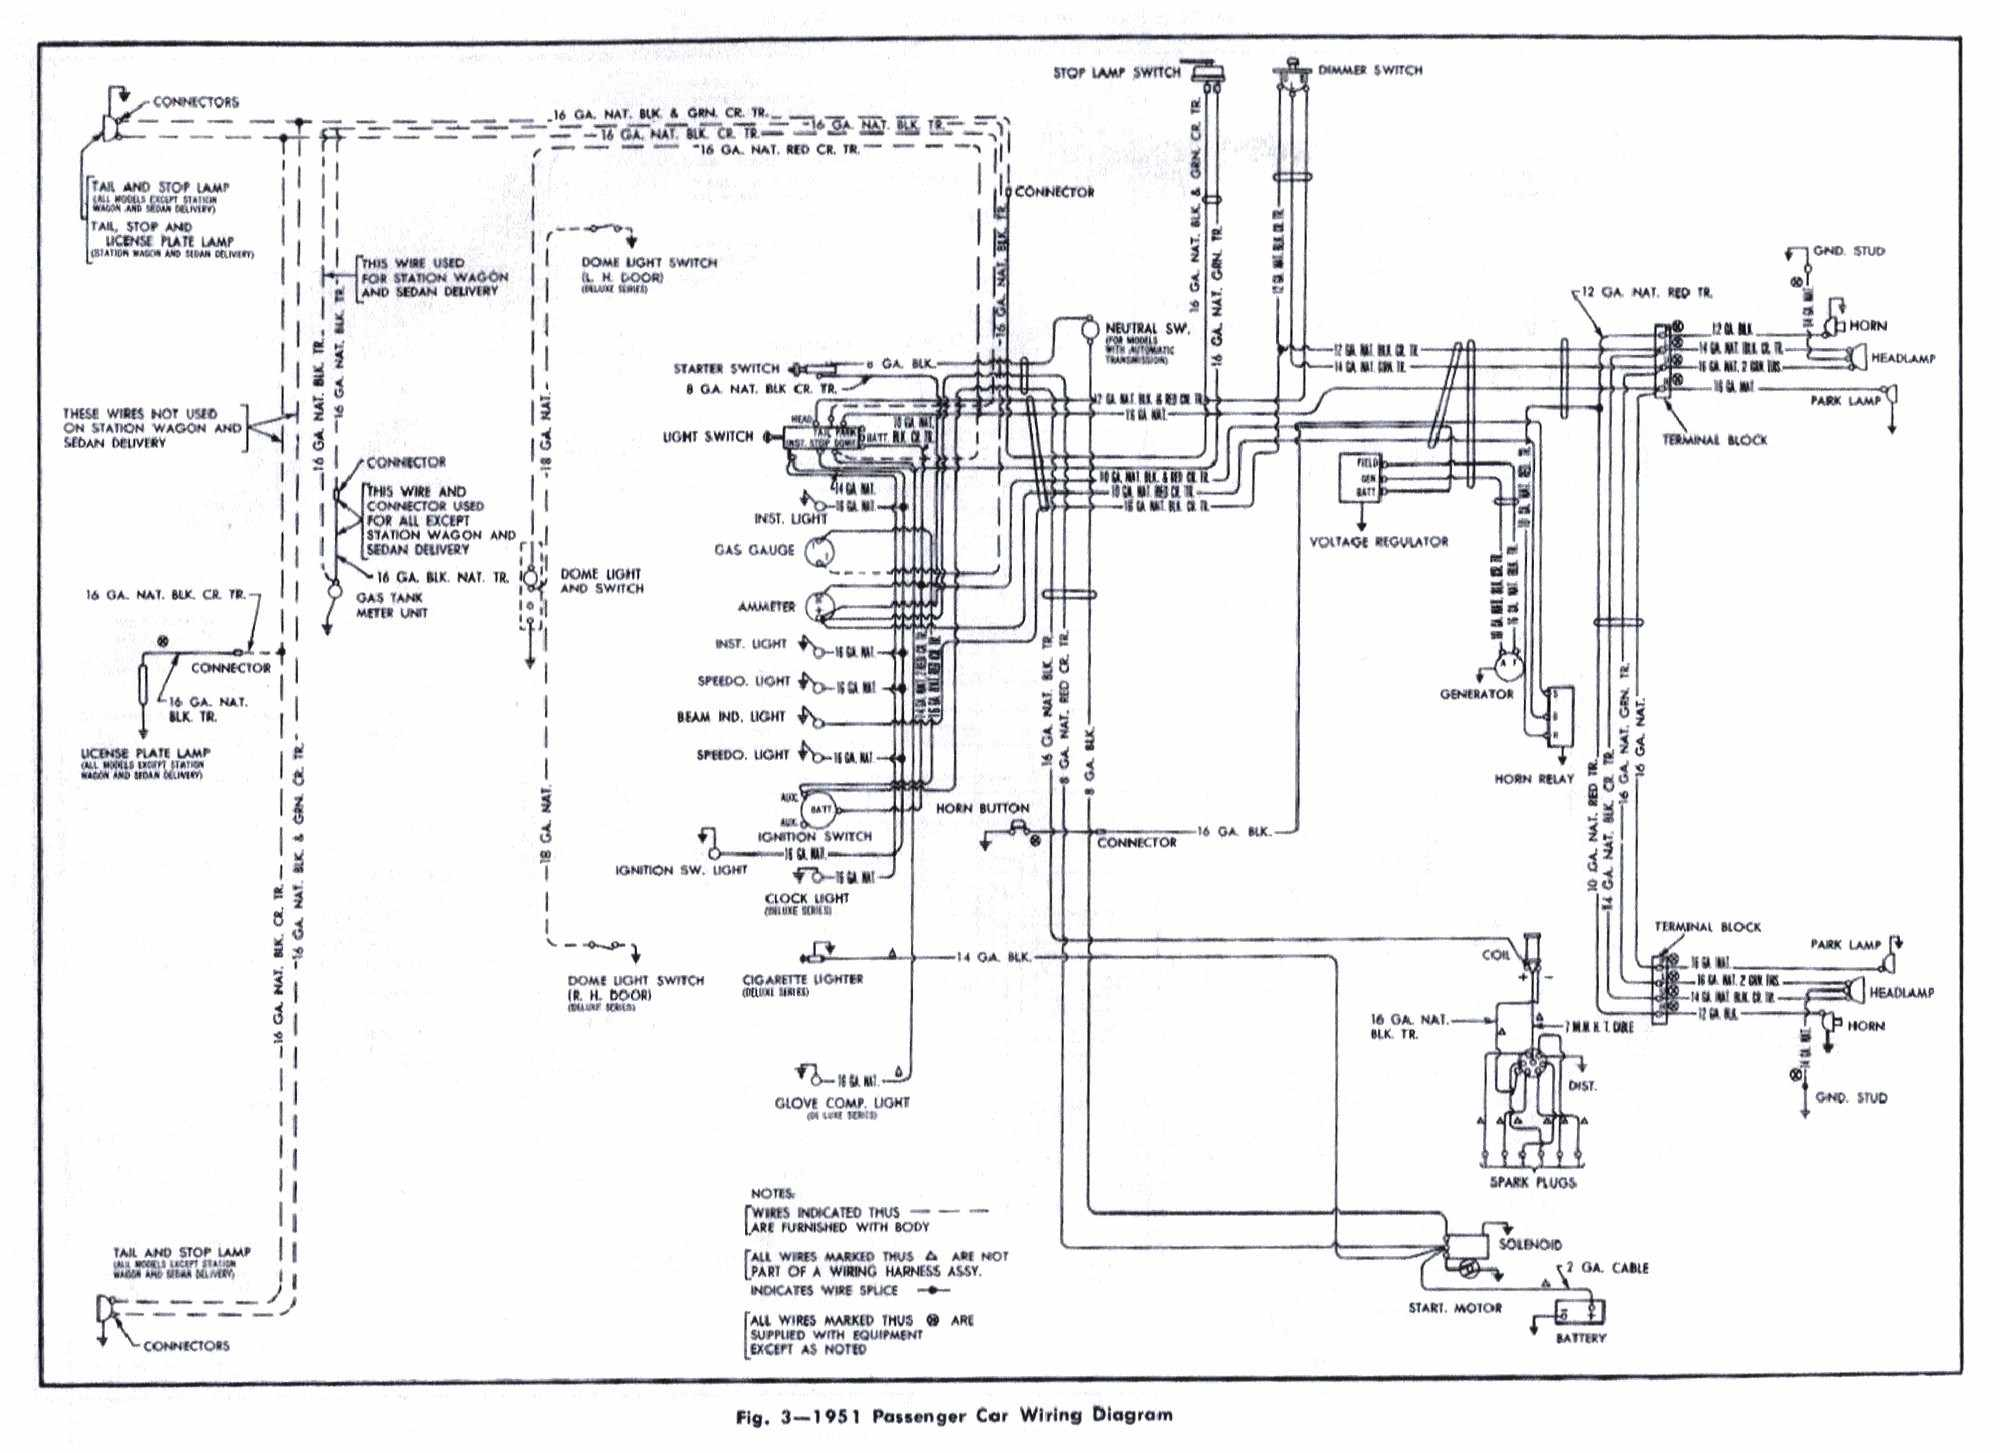 1969 Olds 442 Wiring Diagram 1969 Olds 442 Fuel Pump